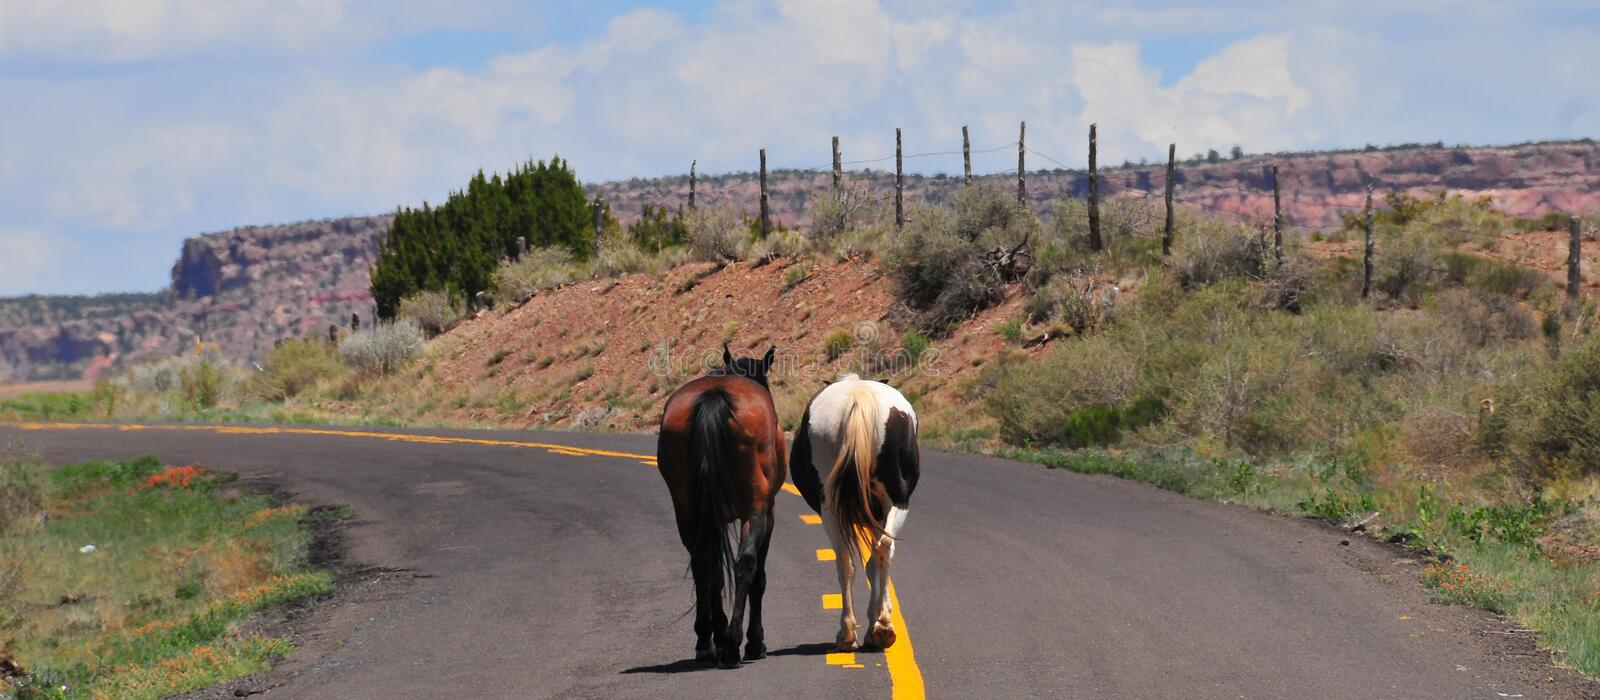 Southwest Landscape with Horses. Grazing along the roadside. Chestnut colored horse with black mane and tail and pinto pony companion. Native American royalty free stock photo